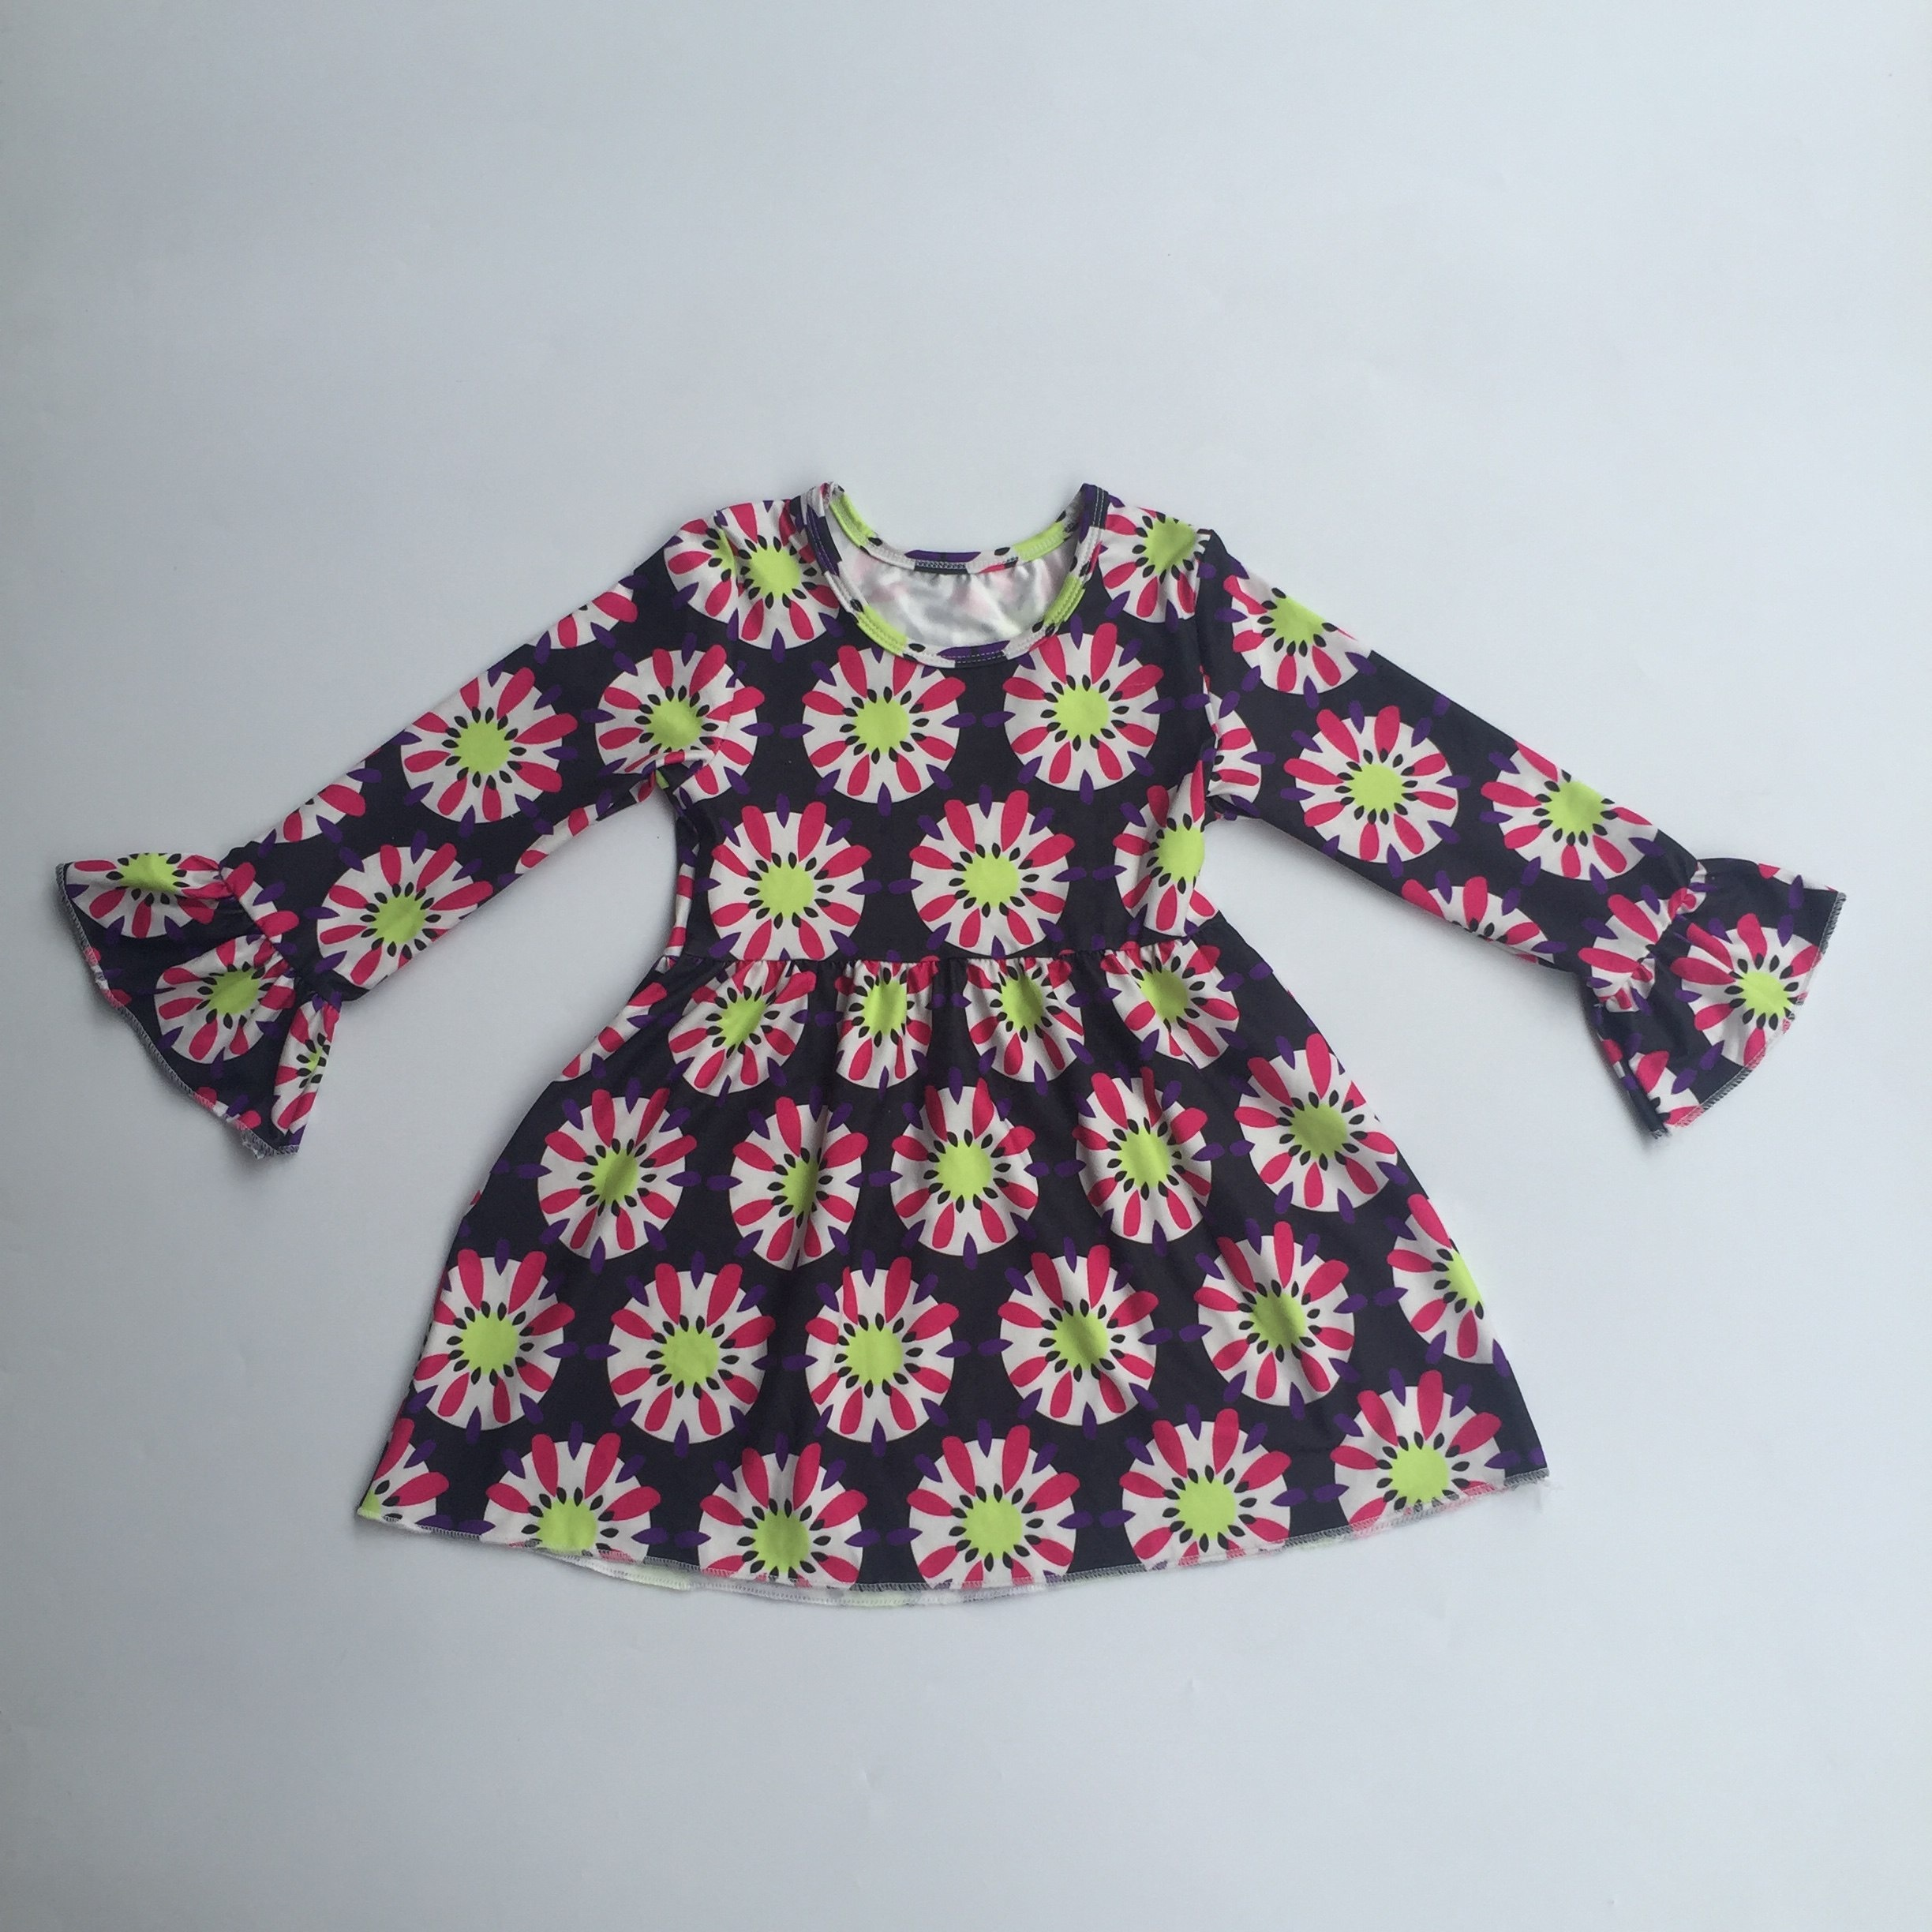 6dd7e0828a1ae Girls' Smocked Dress, Girls' Smocked Dress Suppliers and Manufacturers at  Alibaba.com